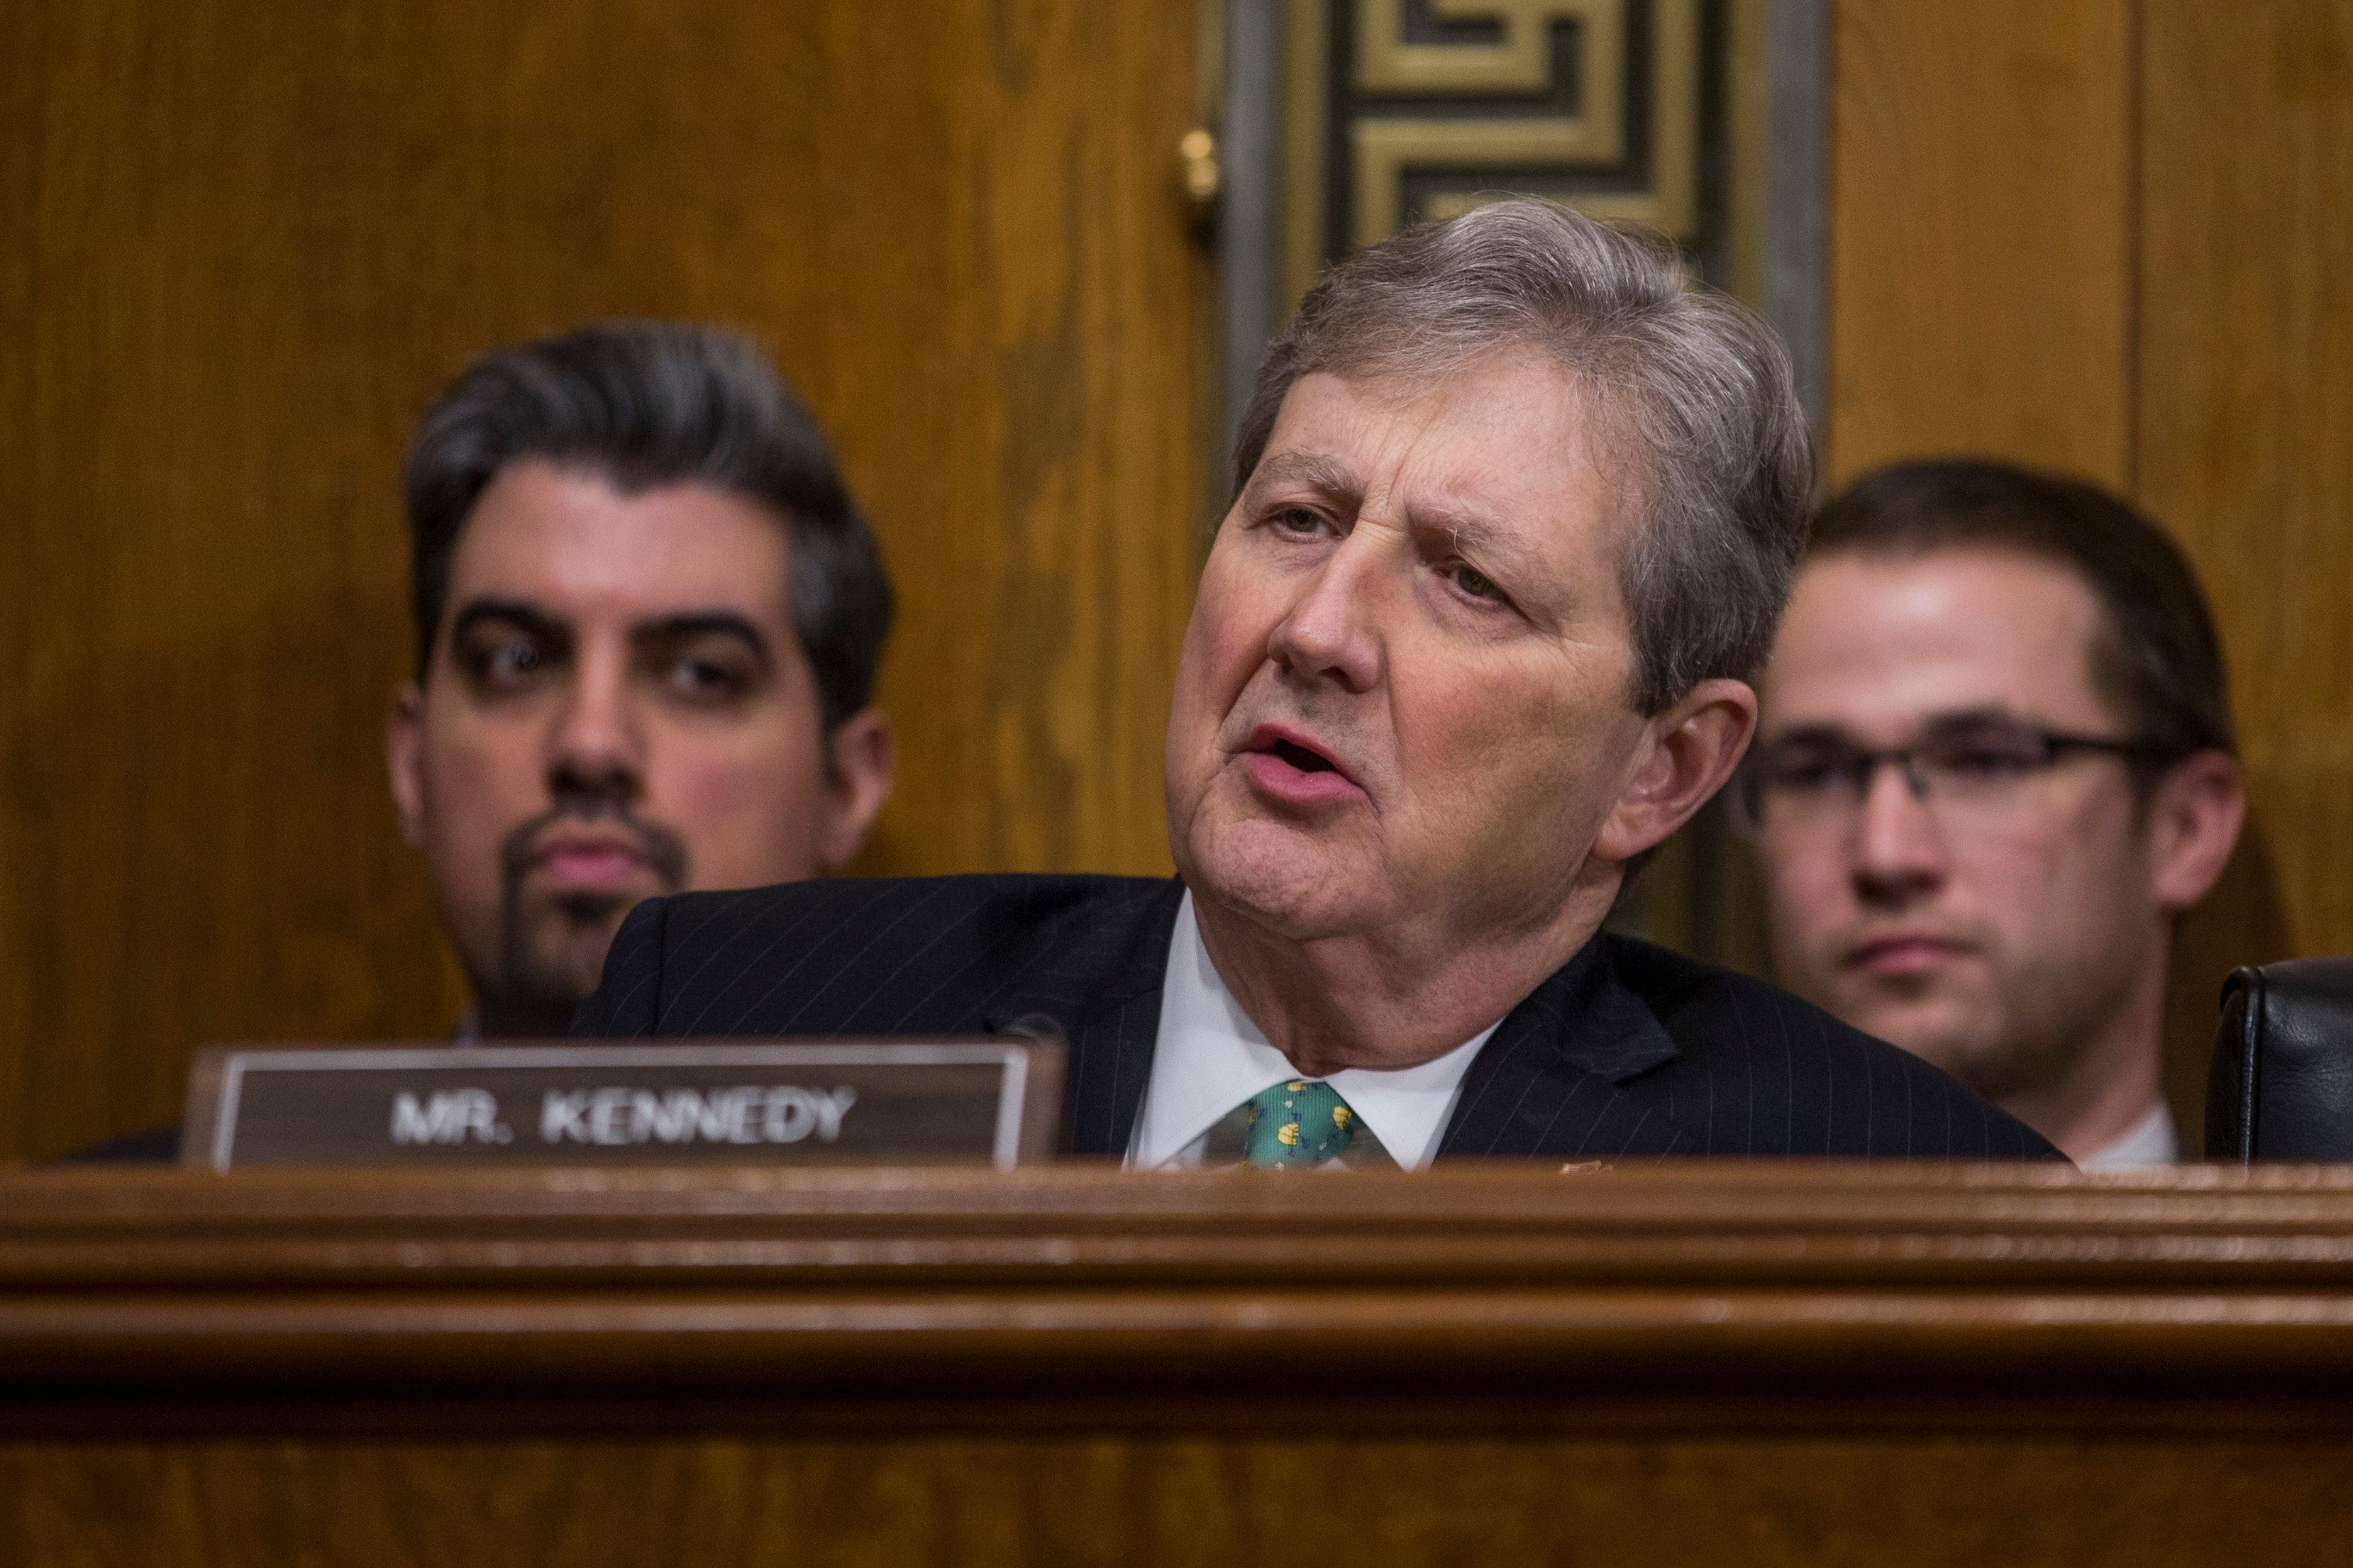 WASHINGTON, DC - FEBRUARY 05: Sen. John Kennedy (R-LA) speaks during a Senate Judiciary confirmation hearing for Neomi Rao, President Donald Trump's nominee to be U.S. circuit judge for the District of Columbia Circuit, on Capitol Hill on February 5, 2019 in Washington, DC. Rao would fill the seat left vacant by Brett Kavanaugh after Kavanaugh joined the Supreme Court. (Photo by Zach Gibson/Getty Images)